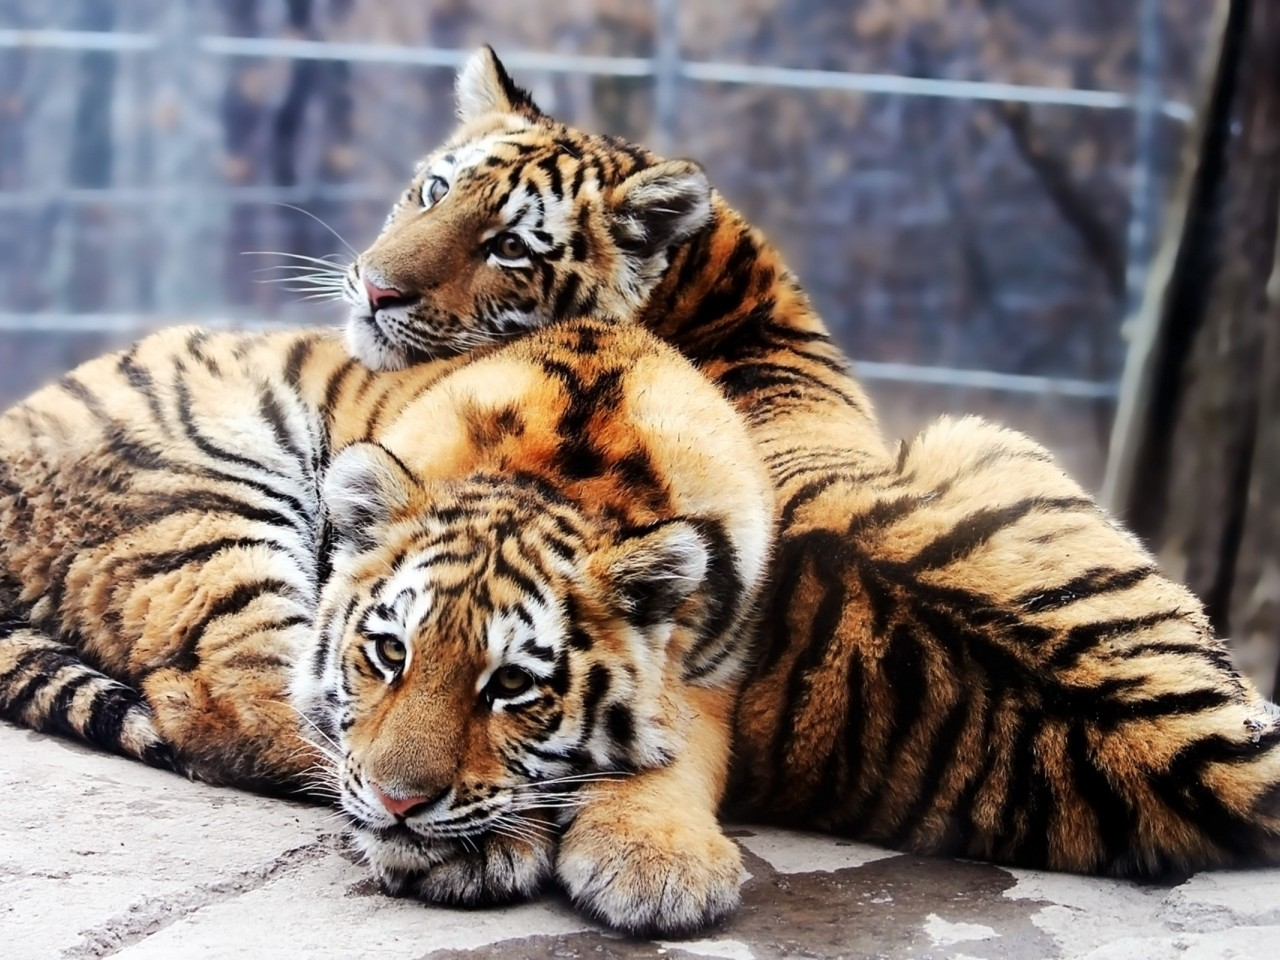 Tiger and baby tiger HD Wallpaper